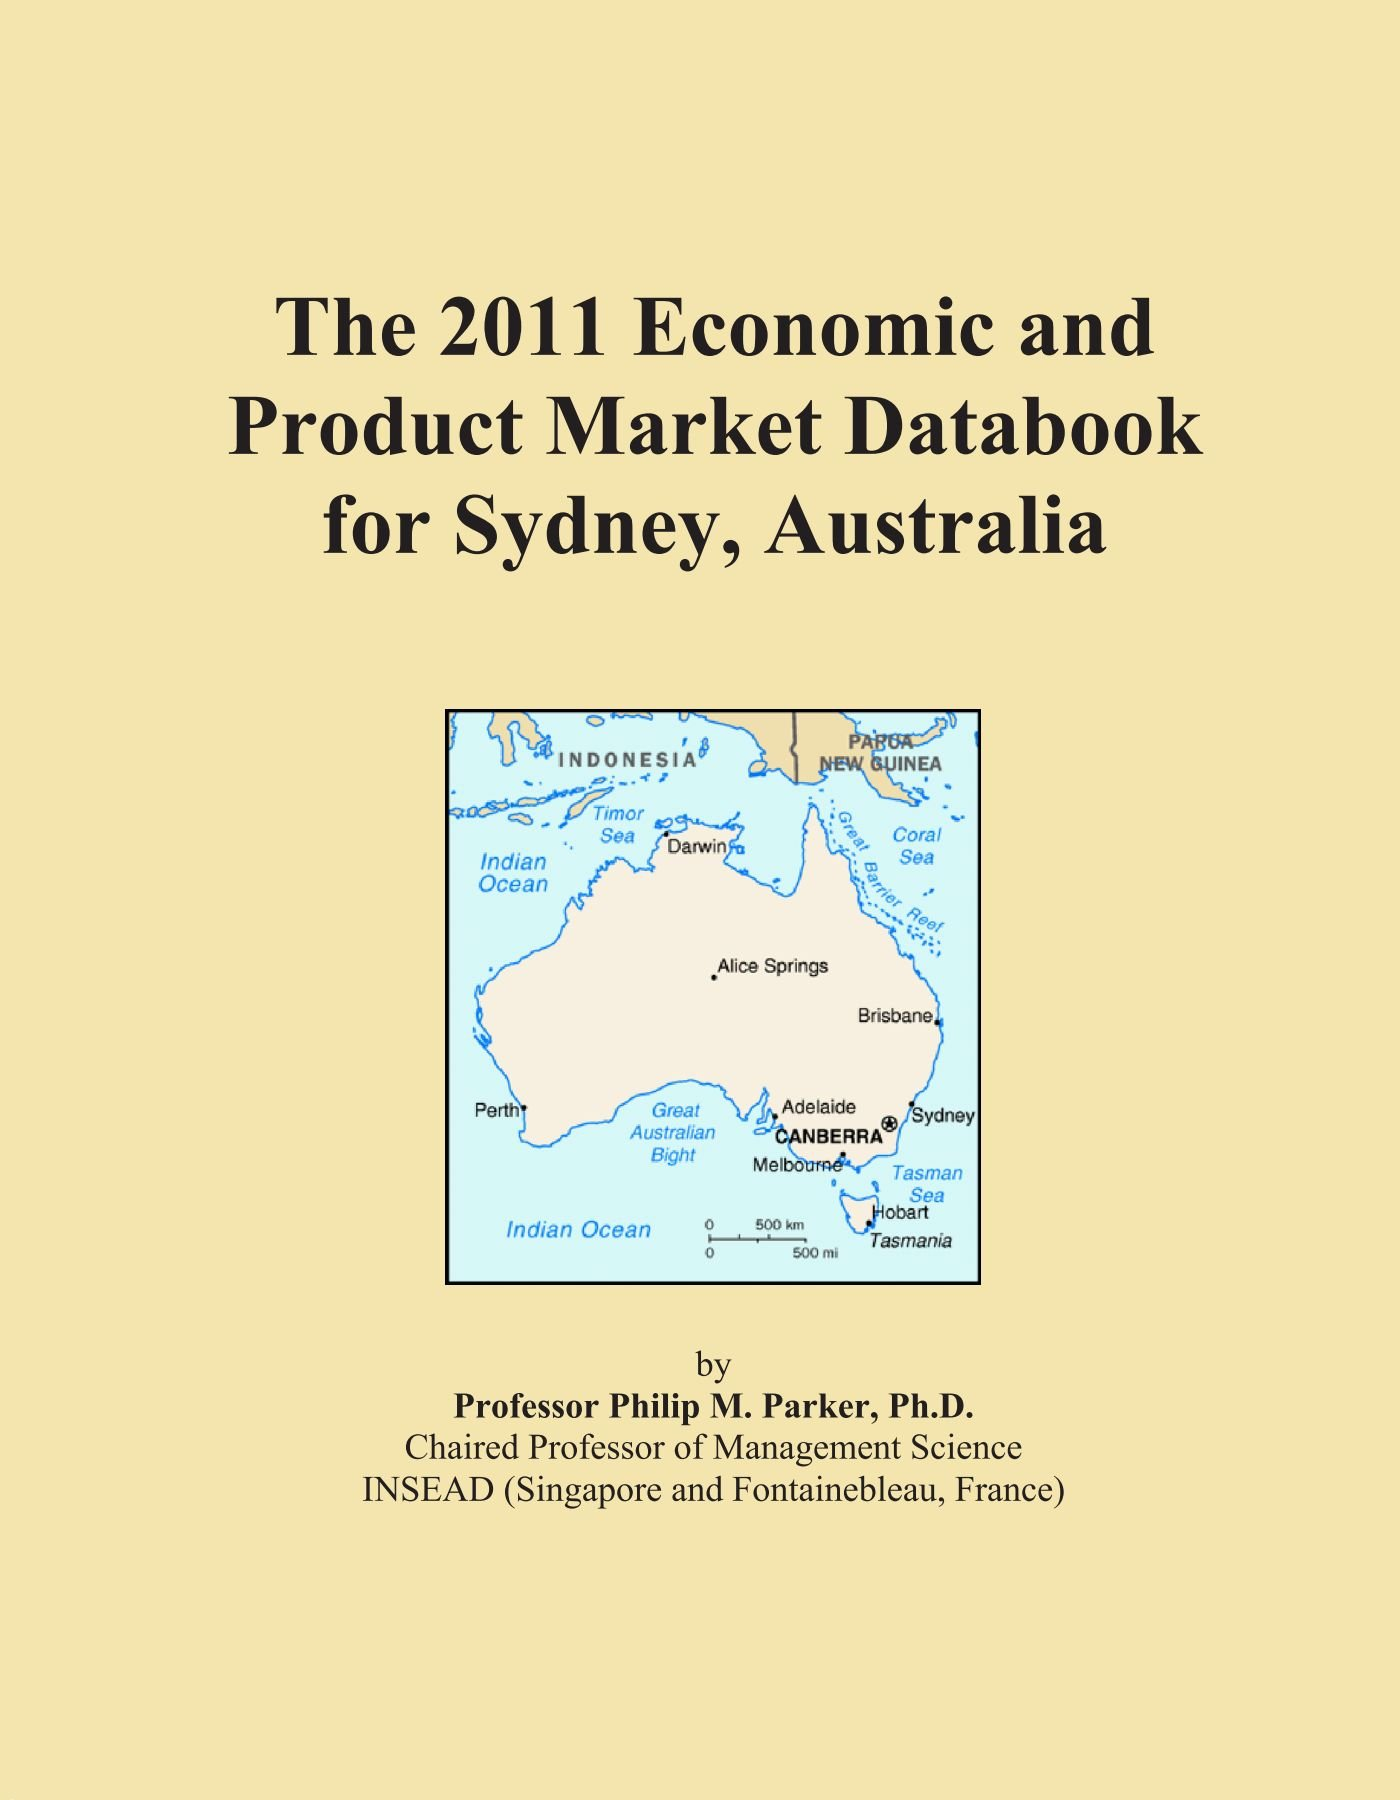 The 2011 Economic and Product Market Databook for Sydney, Australia pdf